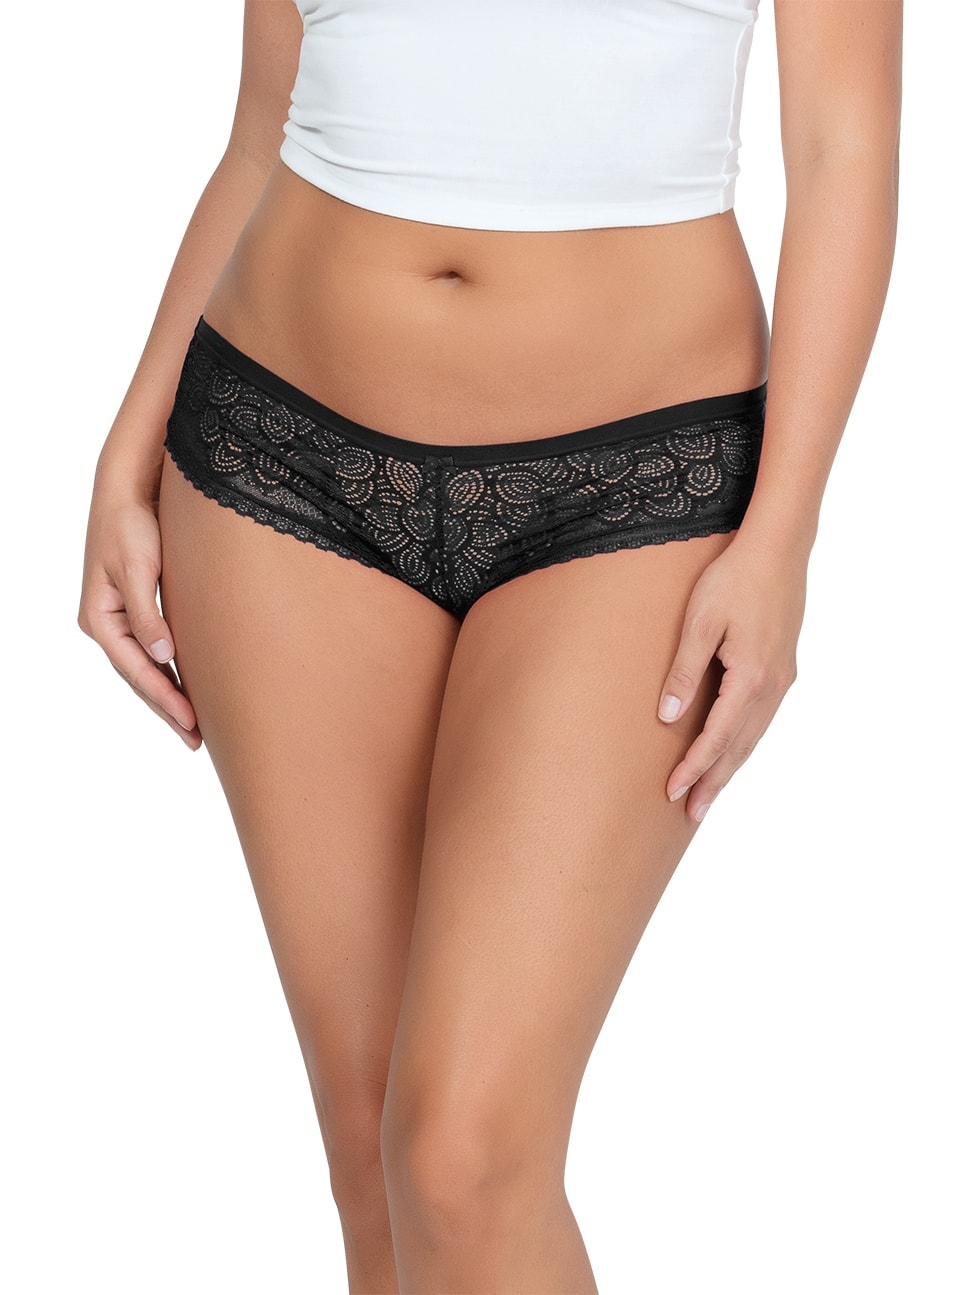 ParfaitPanty SoGlam HipsterPP502 Black front1 - Parfait Panty So Glam Hipster - Black - PP502